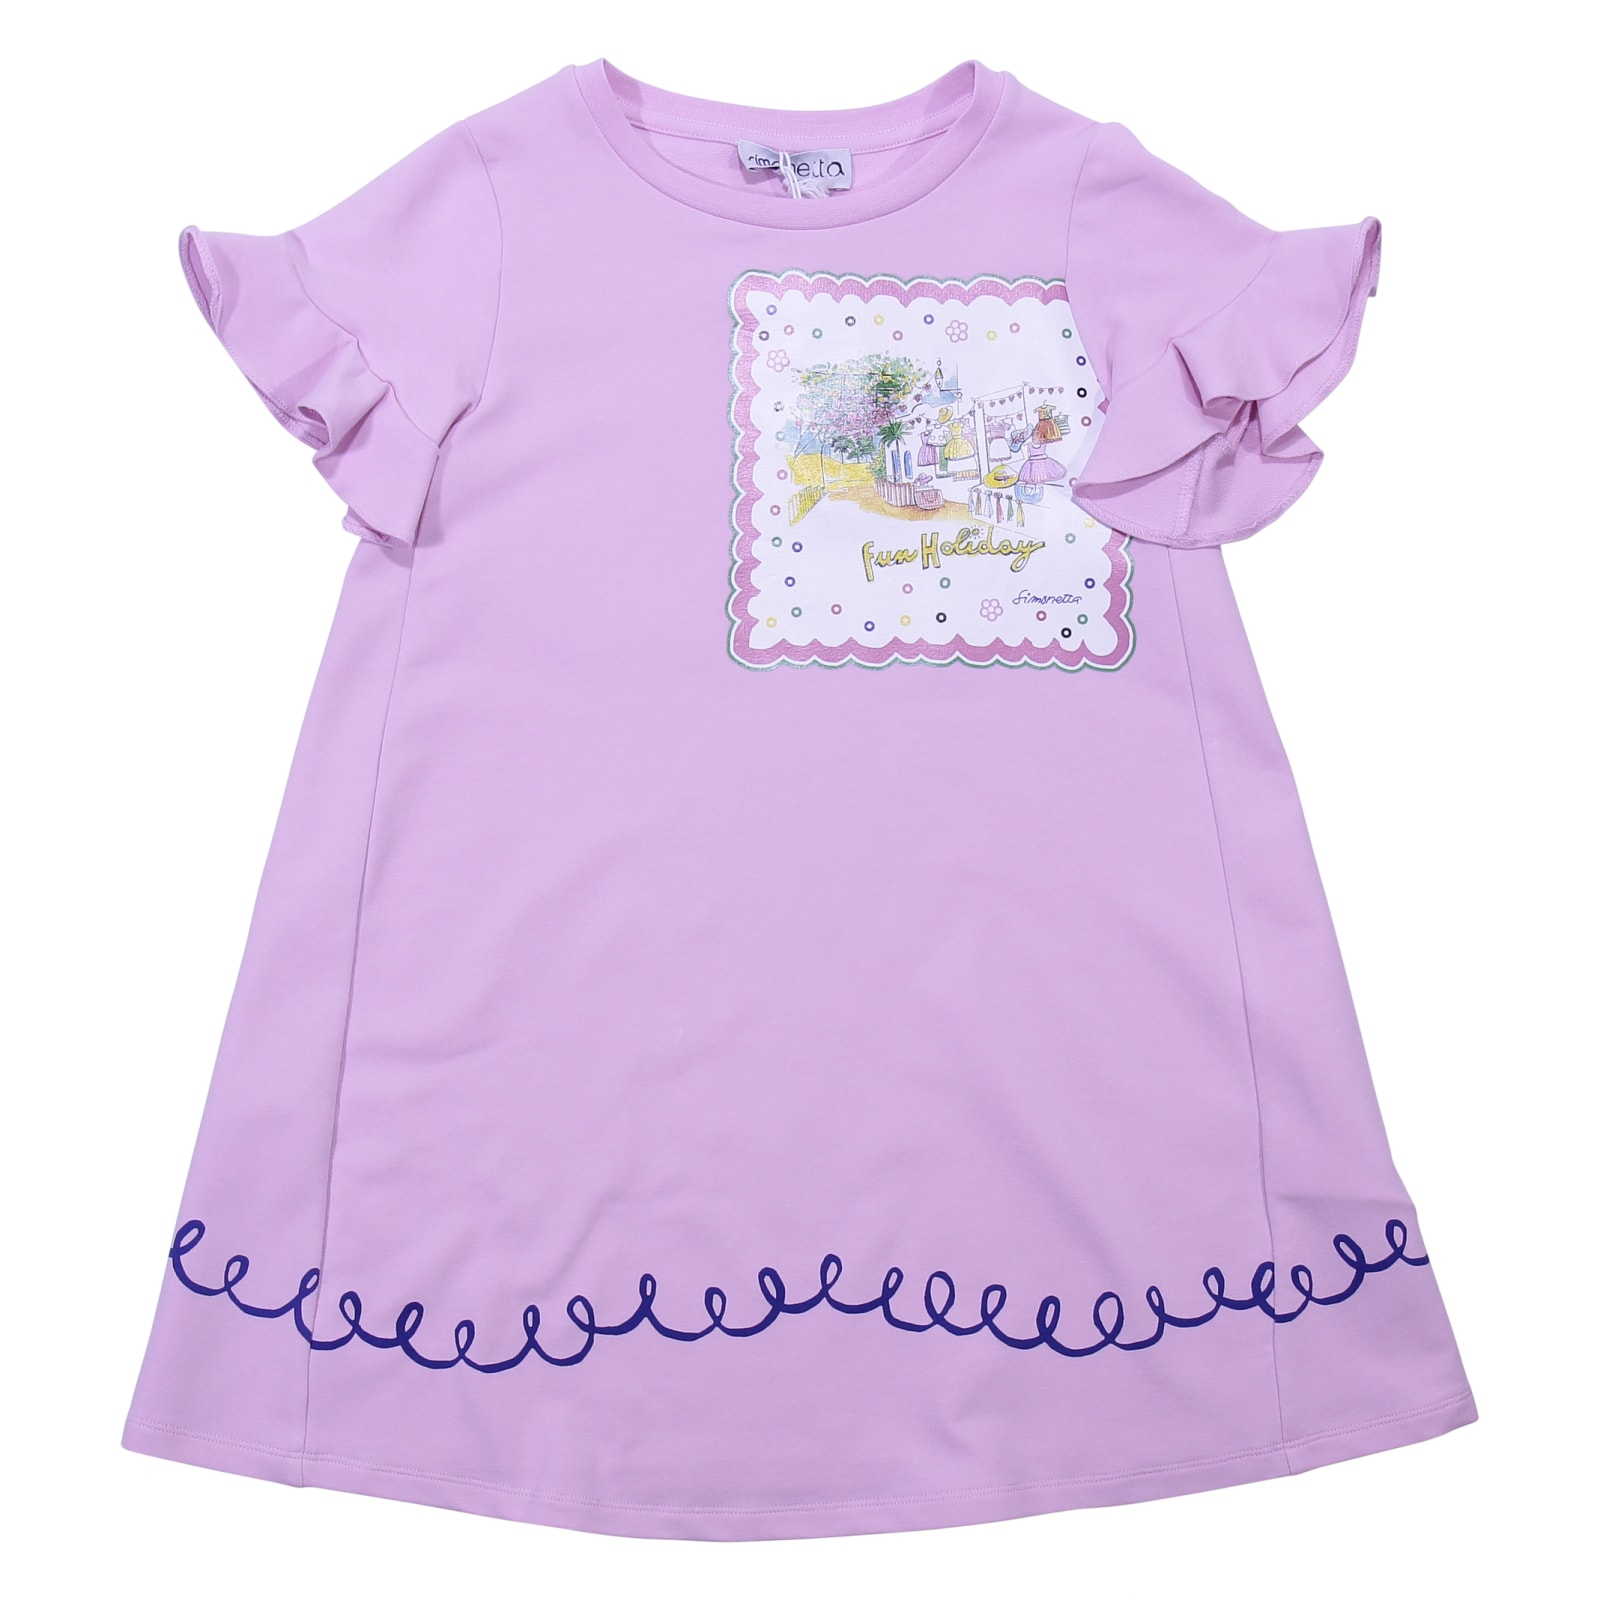 Simonetta Pink Cotton Sweatshirt Dress